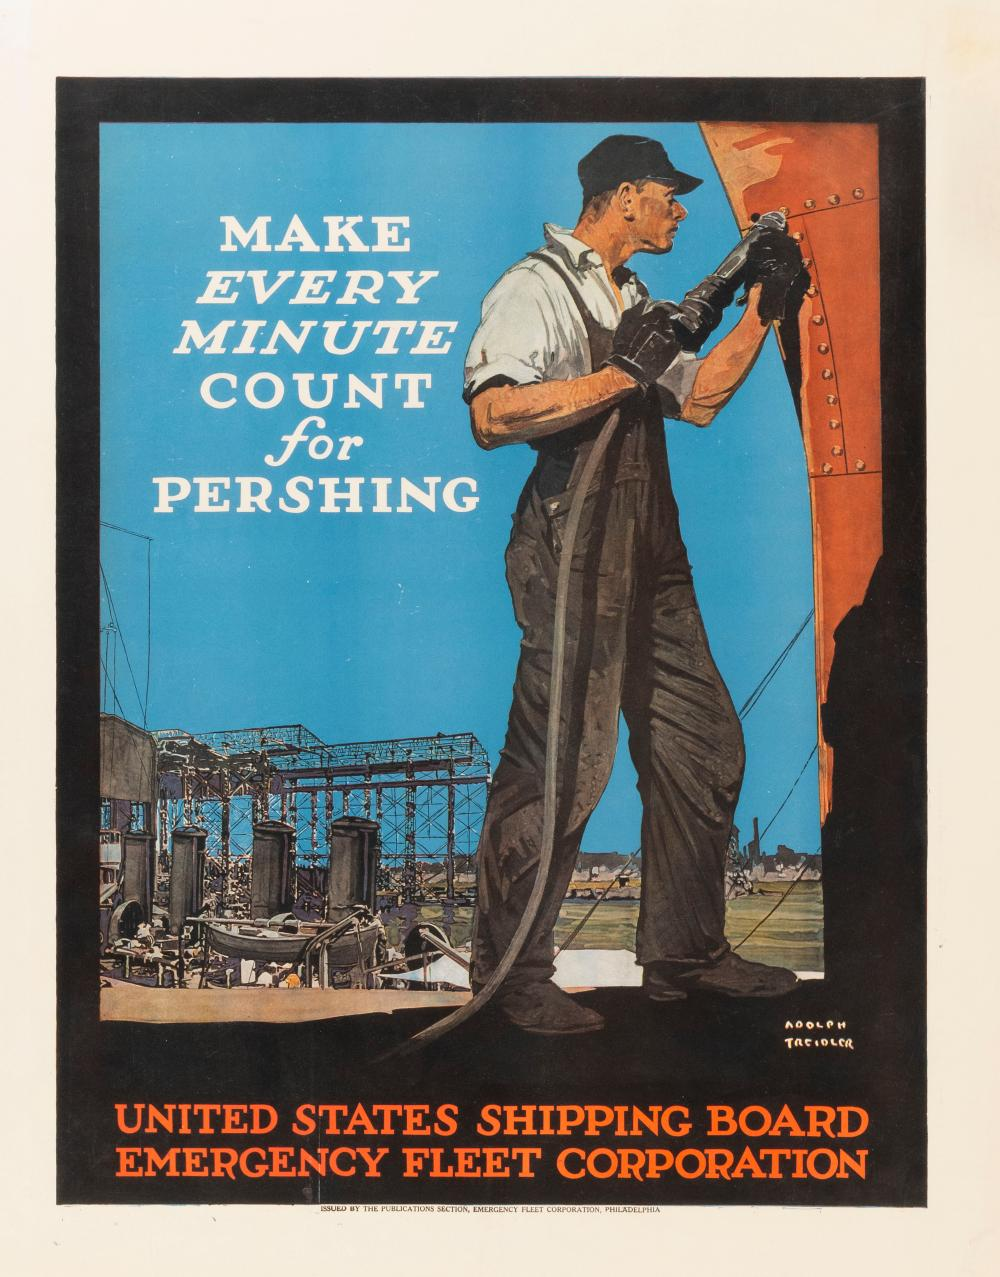 """""""MAKE EVERY MINUTE COUNT FOR PERSHING"""" WORLD WAR I POSTER By Adolph Treidler for the United States Shipping Board Emergency Fleet Co..."""